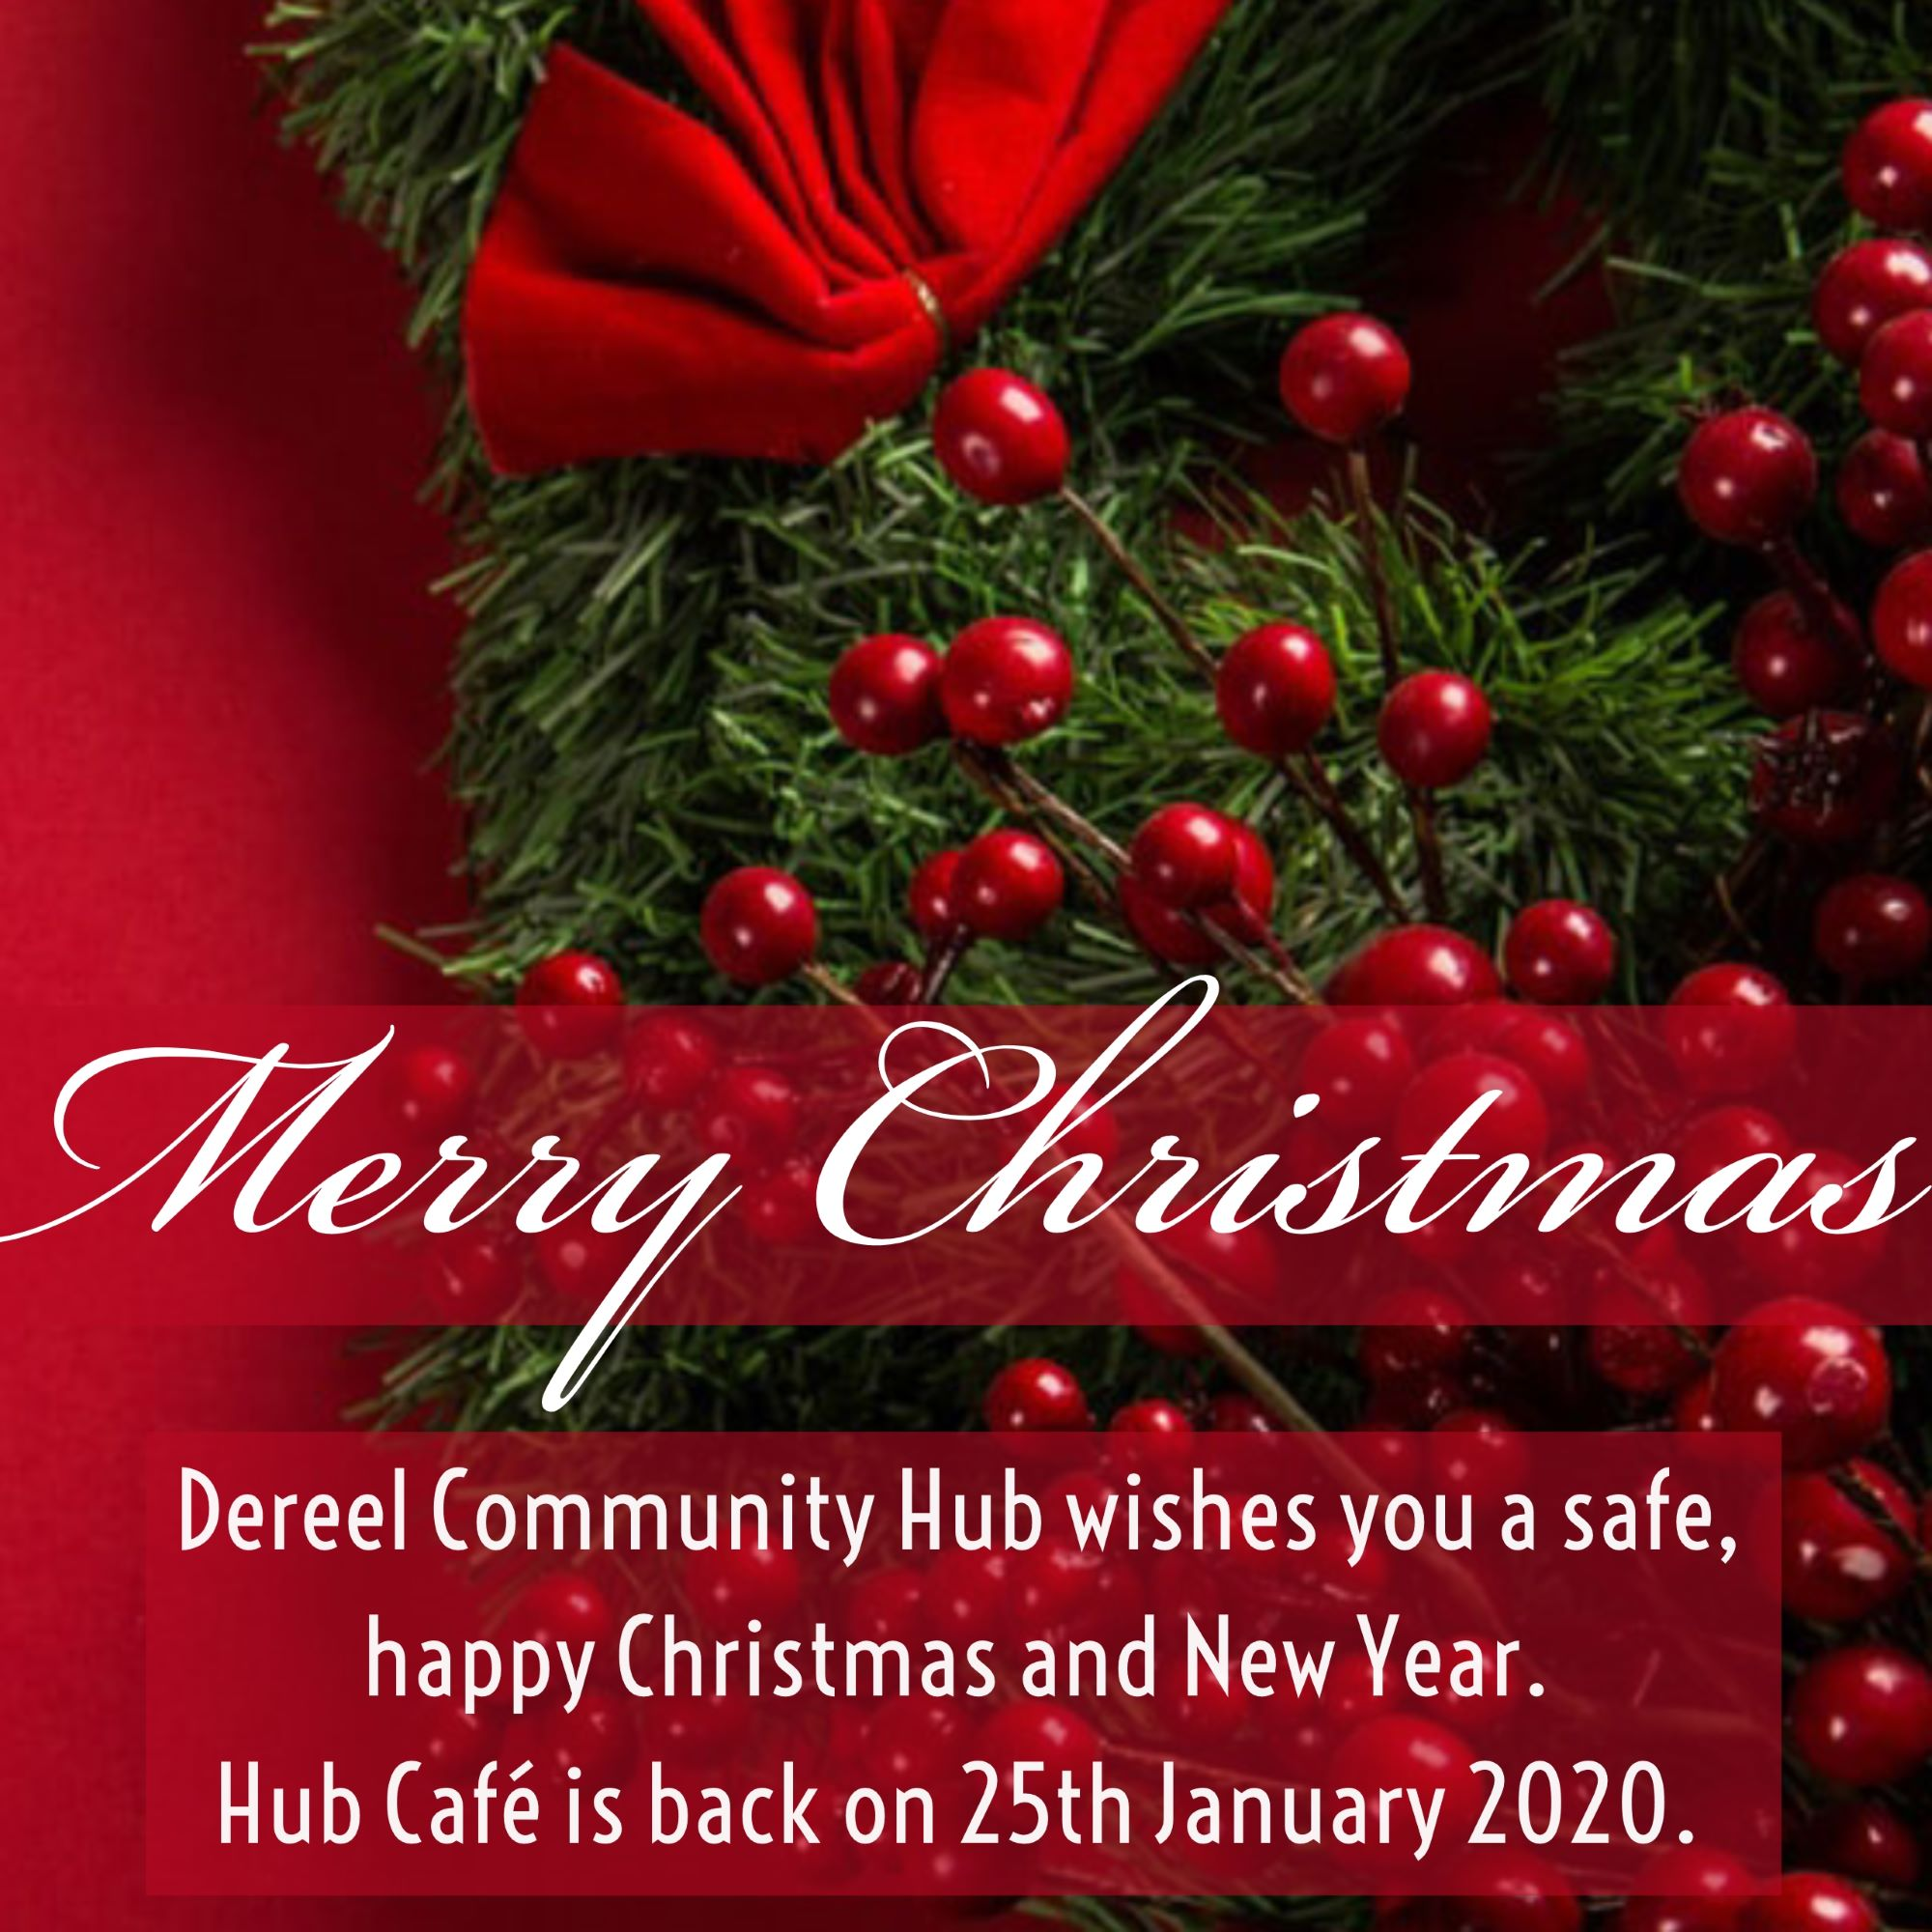 Merry Christmas from the Dereel Community Hub!